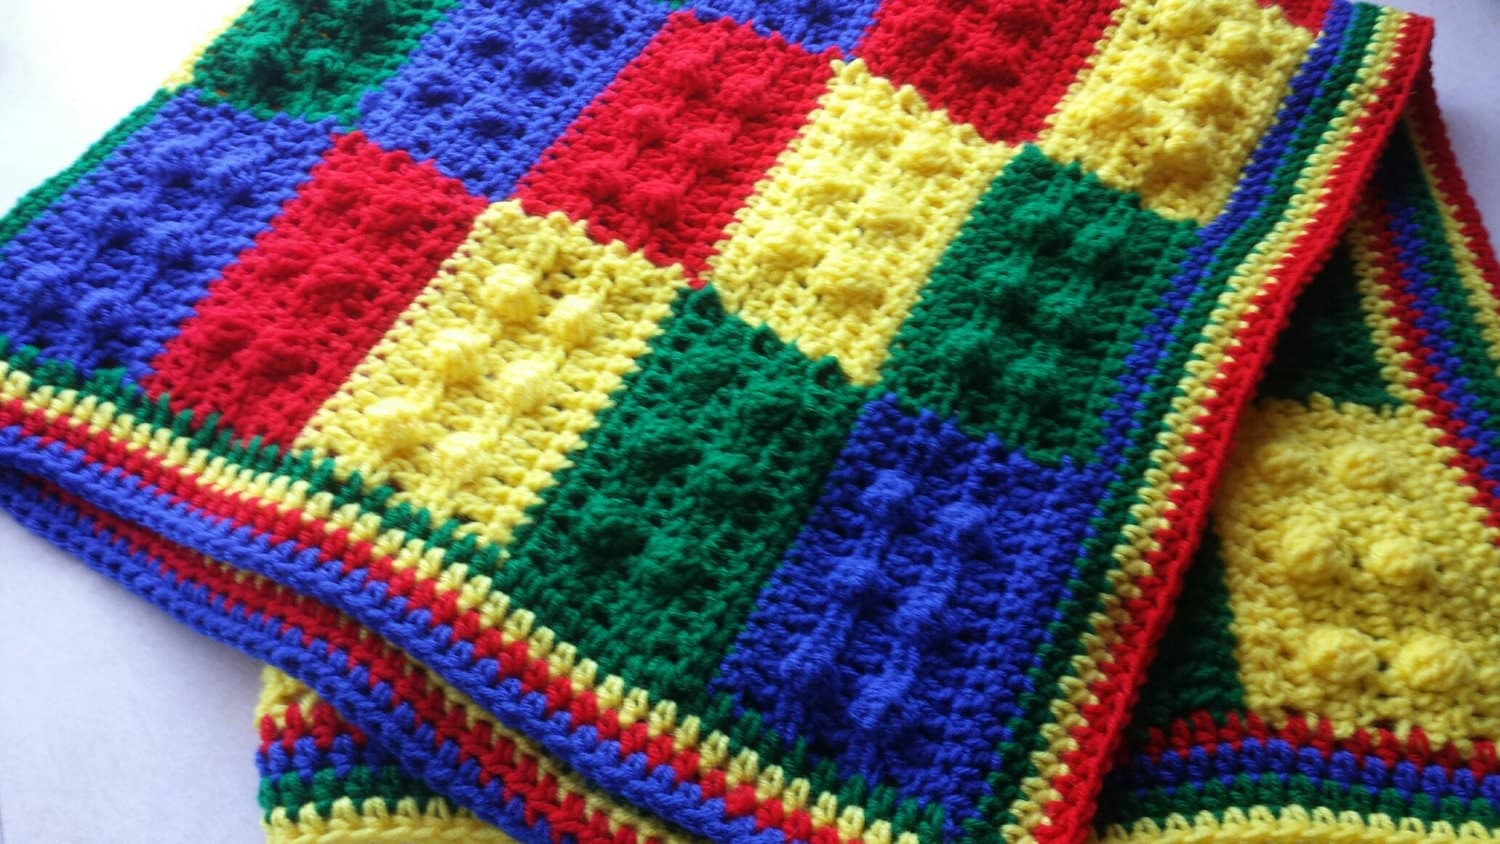 Crochet Lego Blanket : Lego Baby Blanket Crochet Lego Afghan Lego Throw Made to order